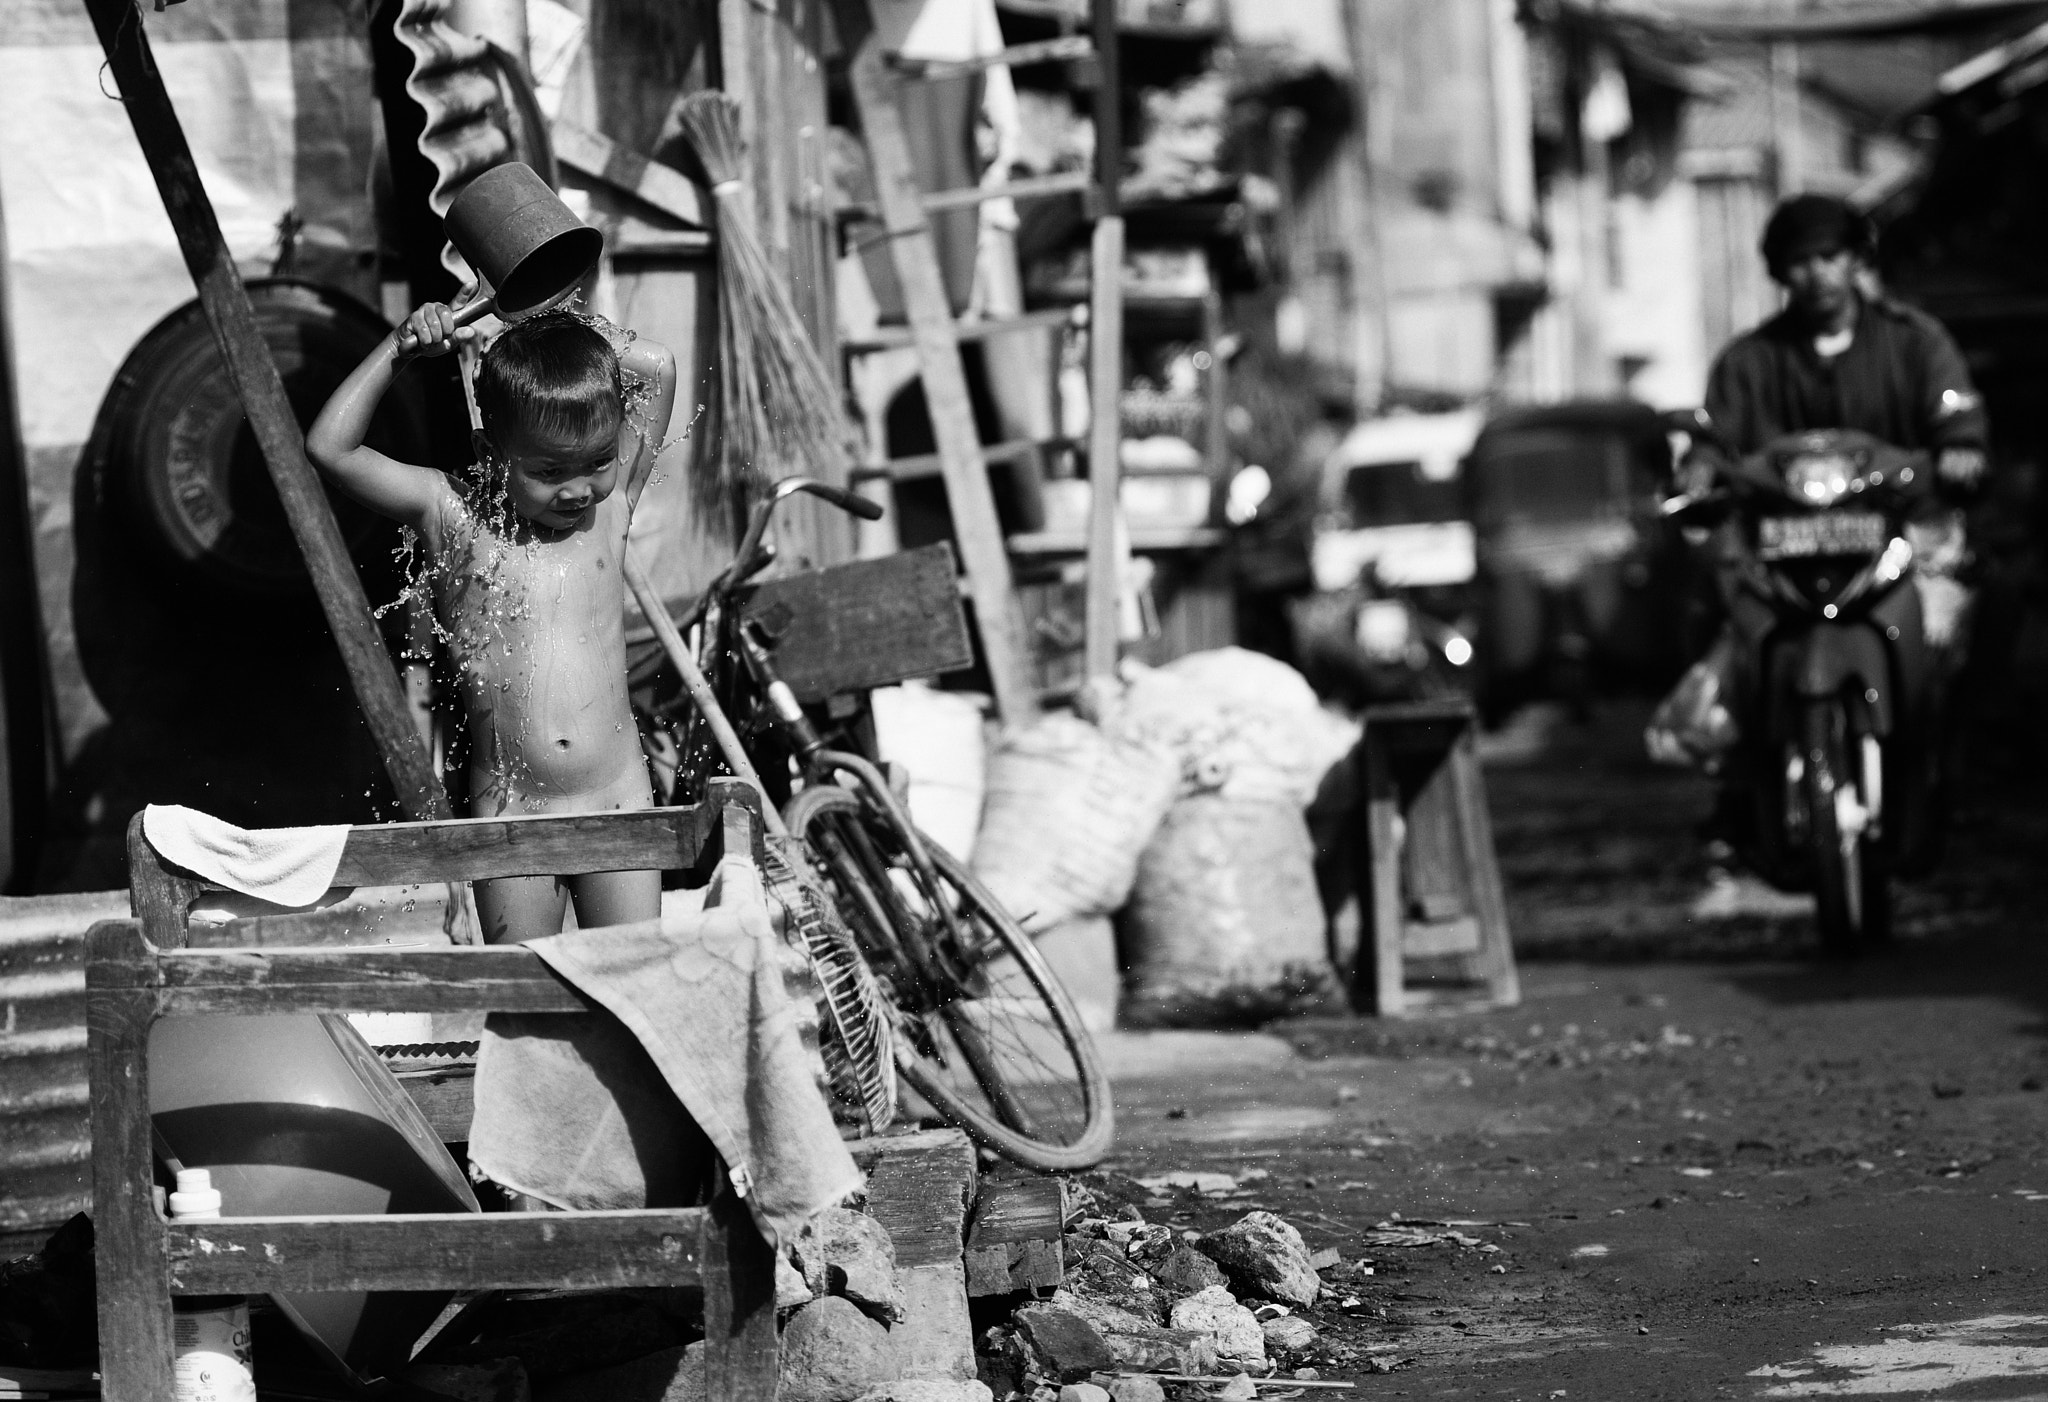 Photograph SQUATTER'S LIFE by OPERAHIDUP PHOTOGRAPHY on 500px